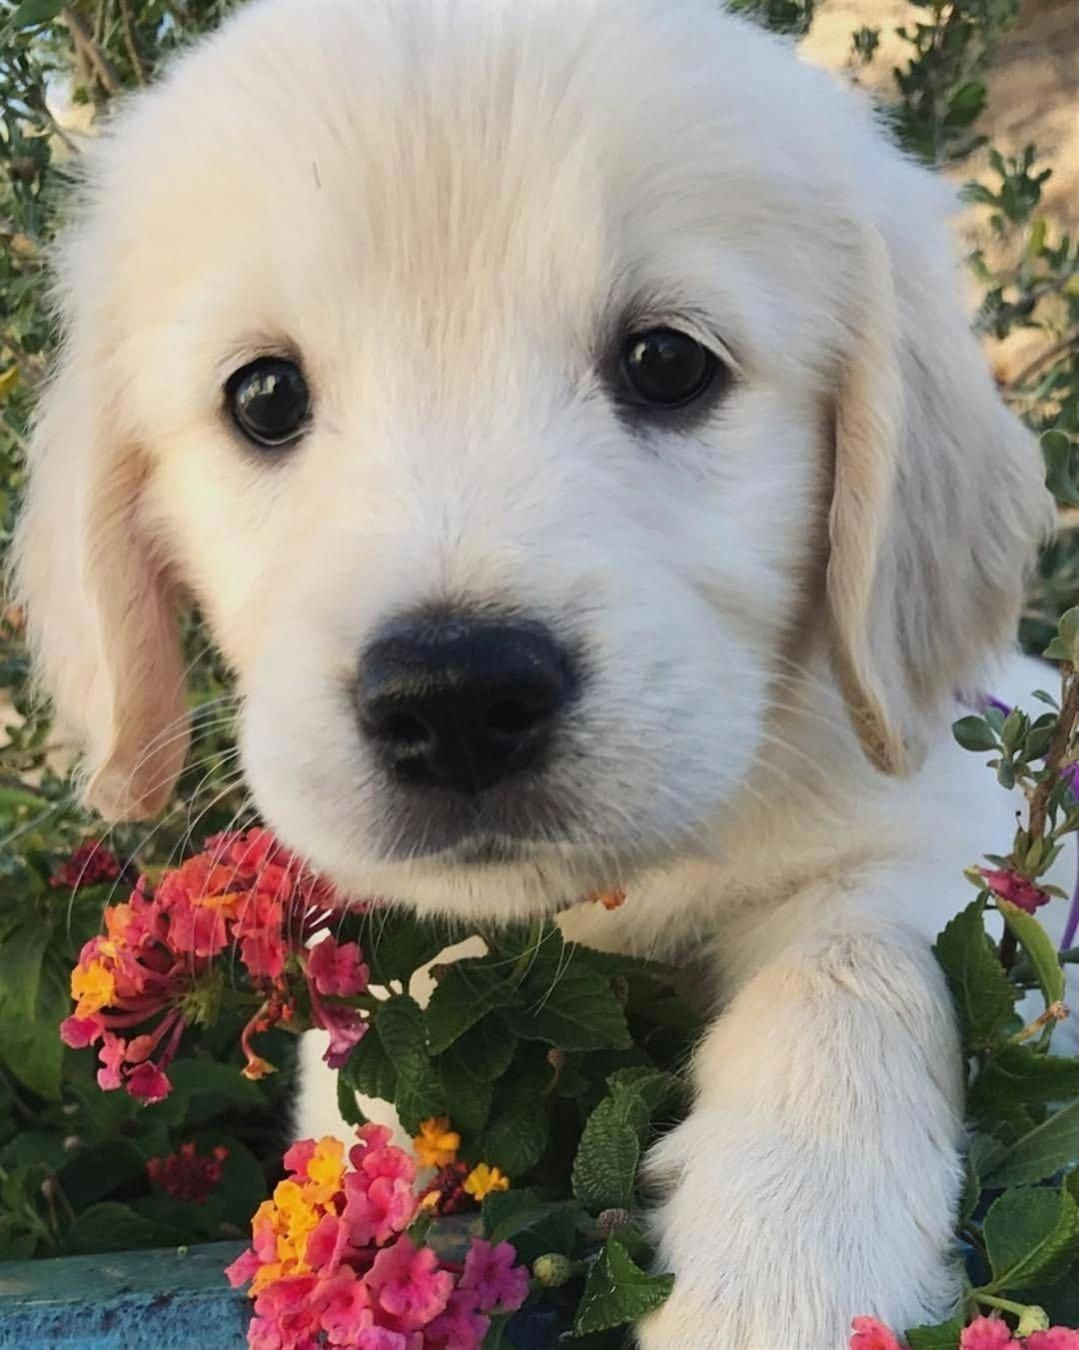 All About The Trustworthy Golden Retriever Dogs Grooming